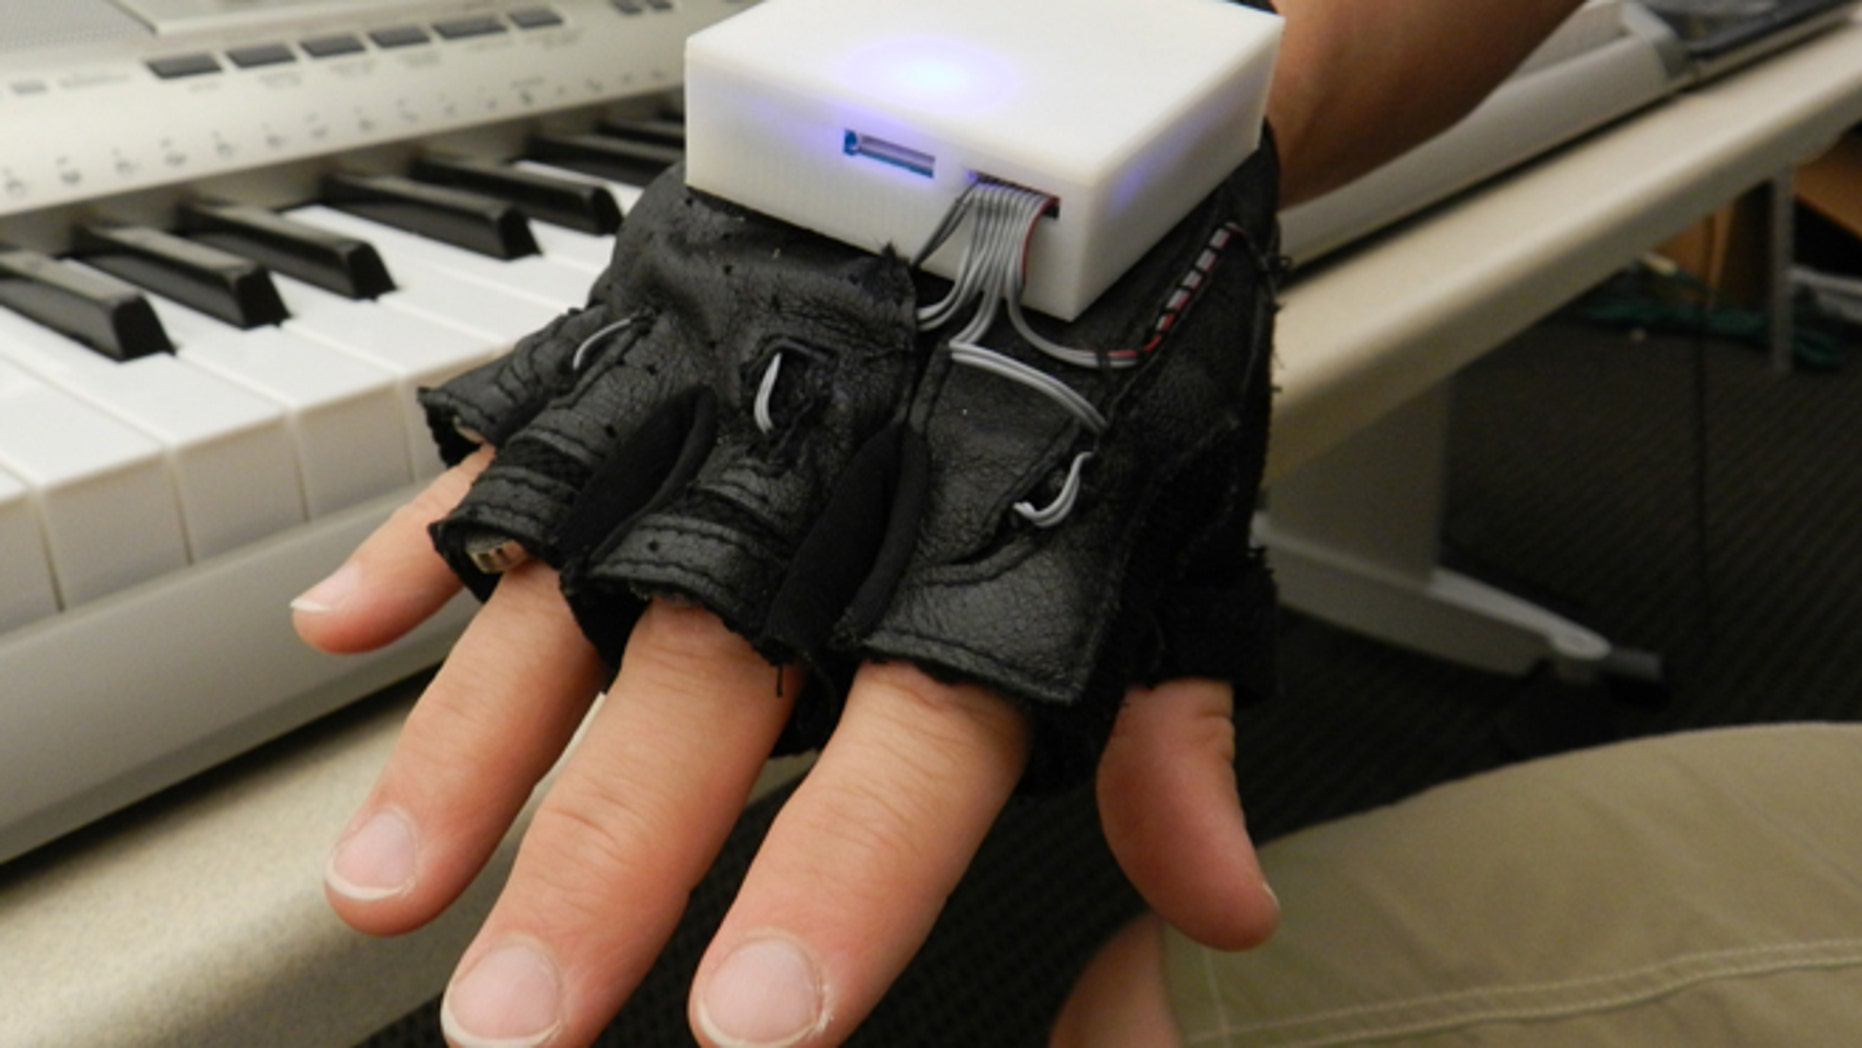 The glove, which looks like a workout glove with a small box on the back, is used with a piano keyboard and vibrates a persons fingers to indicate which keys to play. While learning to play the instrument, several people with SCI experienced improved sensation in their fingers.